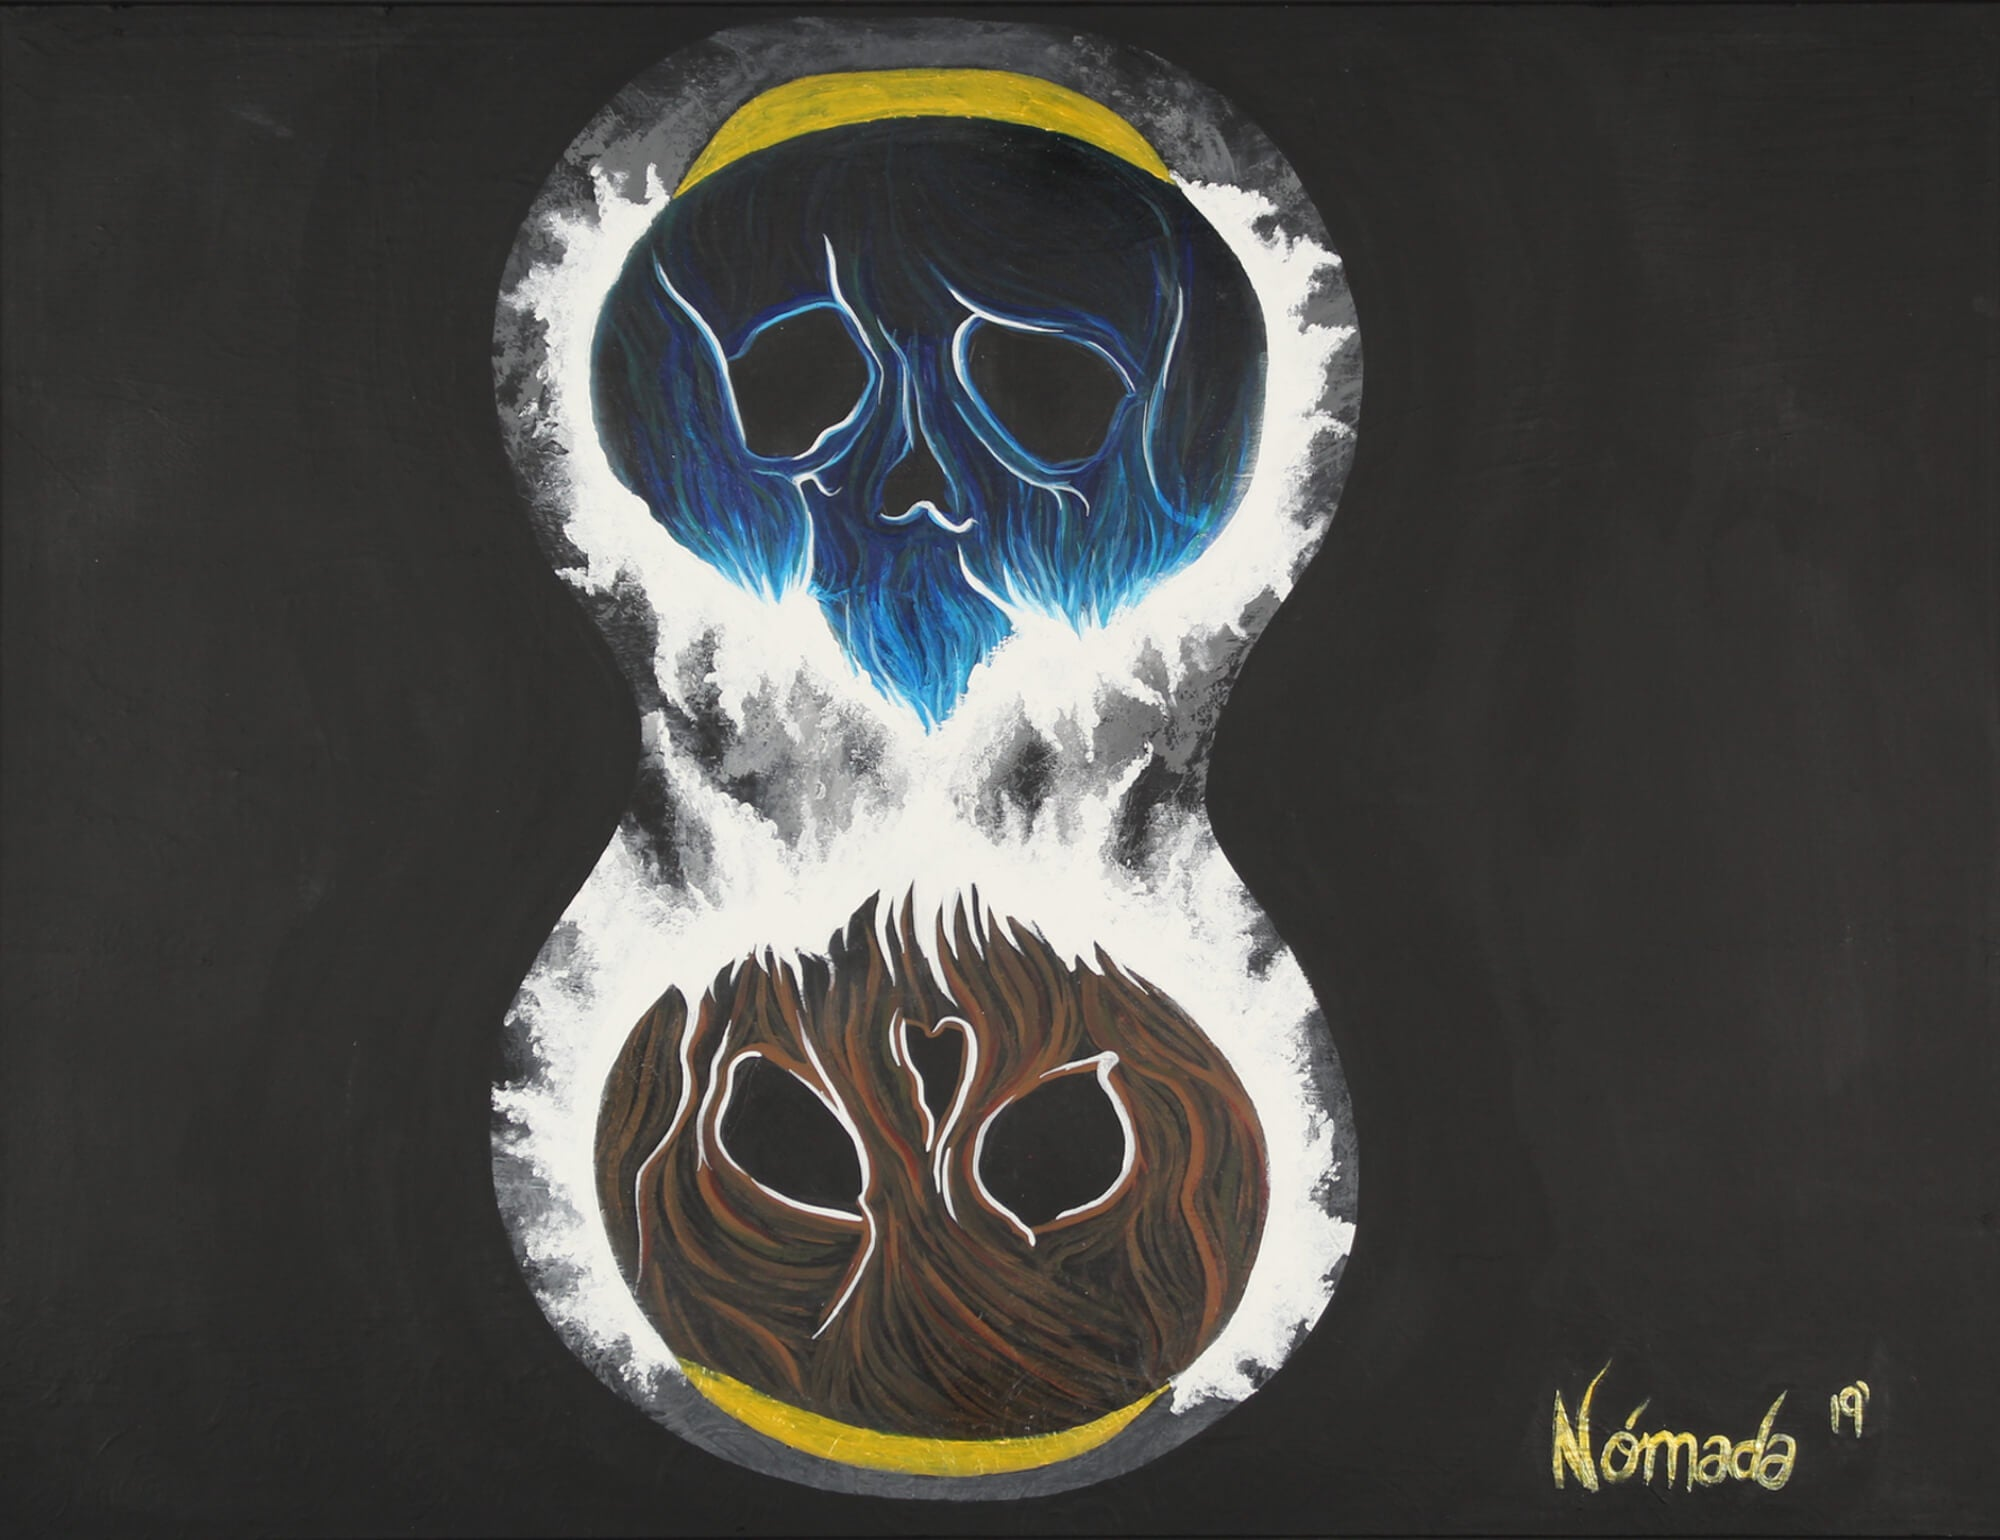 Painting of hourglass made out of skulls depicting doomsday on earth by Nómana